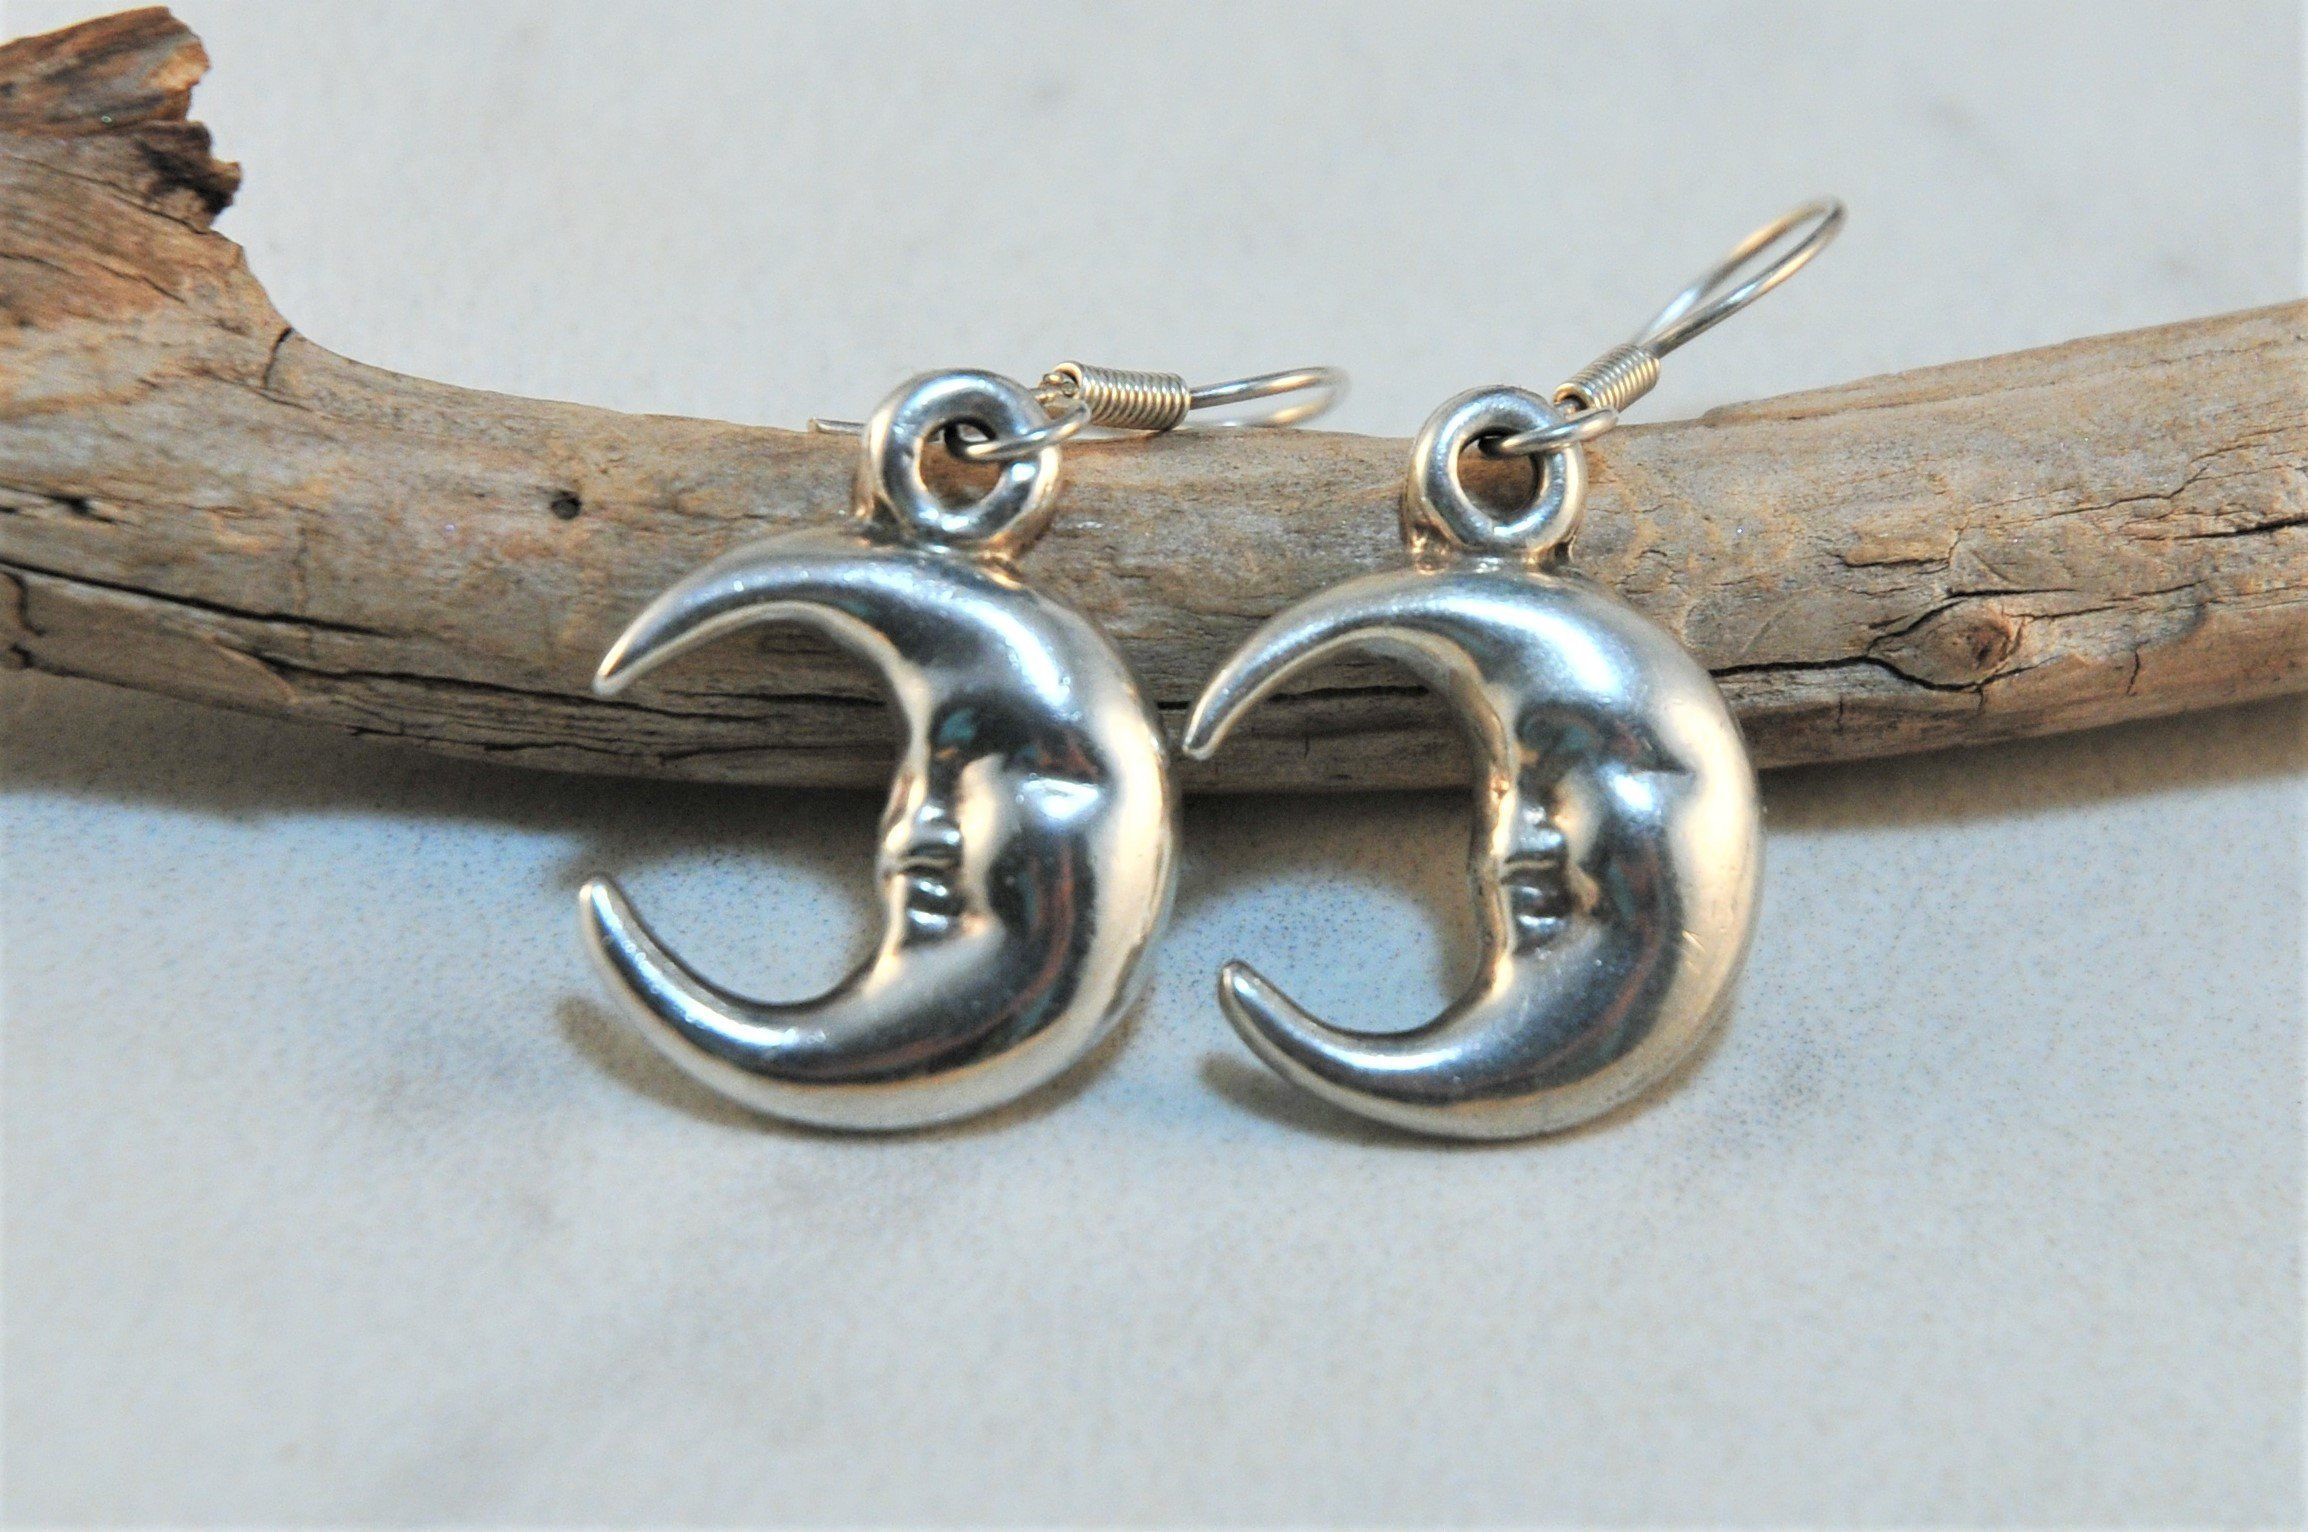 Half Crescent Moon With Face Tattoo: Vintage Sterling Silver Half Moon Face Earrings, Crescent